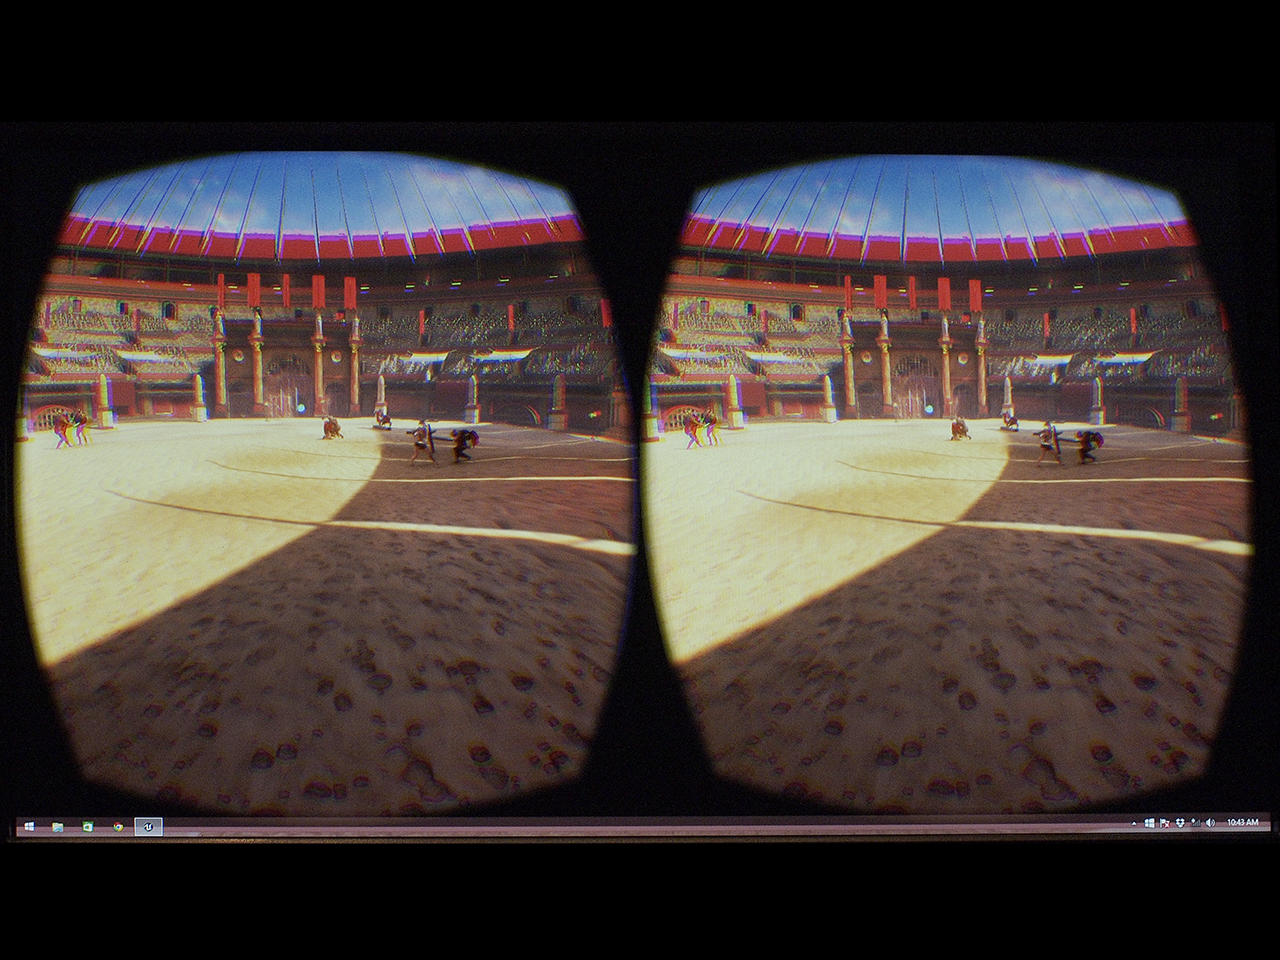 monitor showing two images of the Roman Colosseum that make up a 3D image